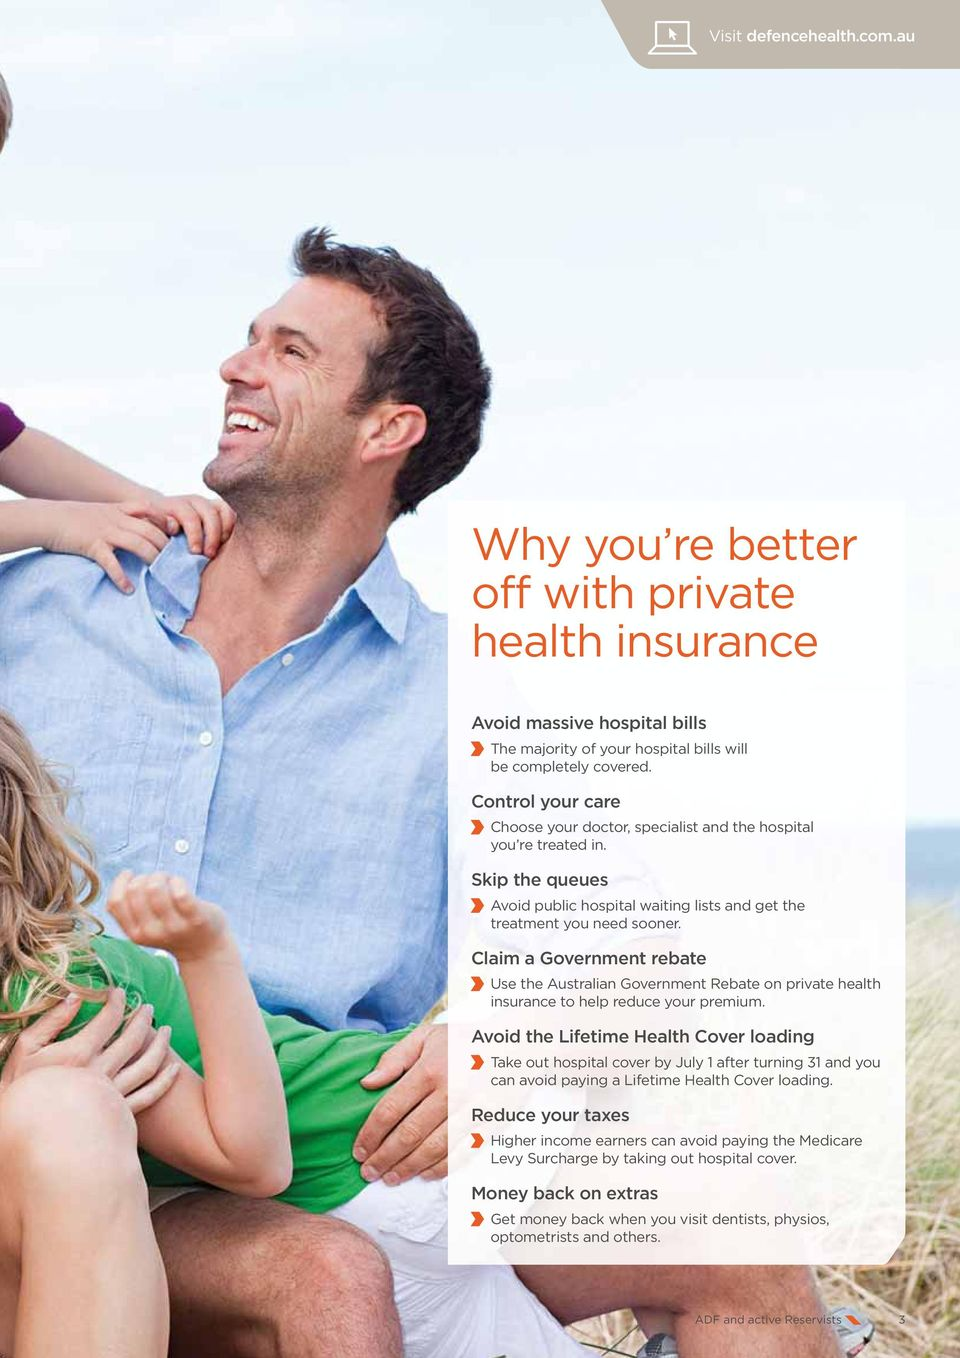 Claim a Government rebate Use the Australian Government Rebate on private health insurance to help reduce your premium.